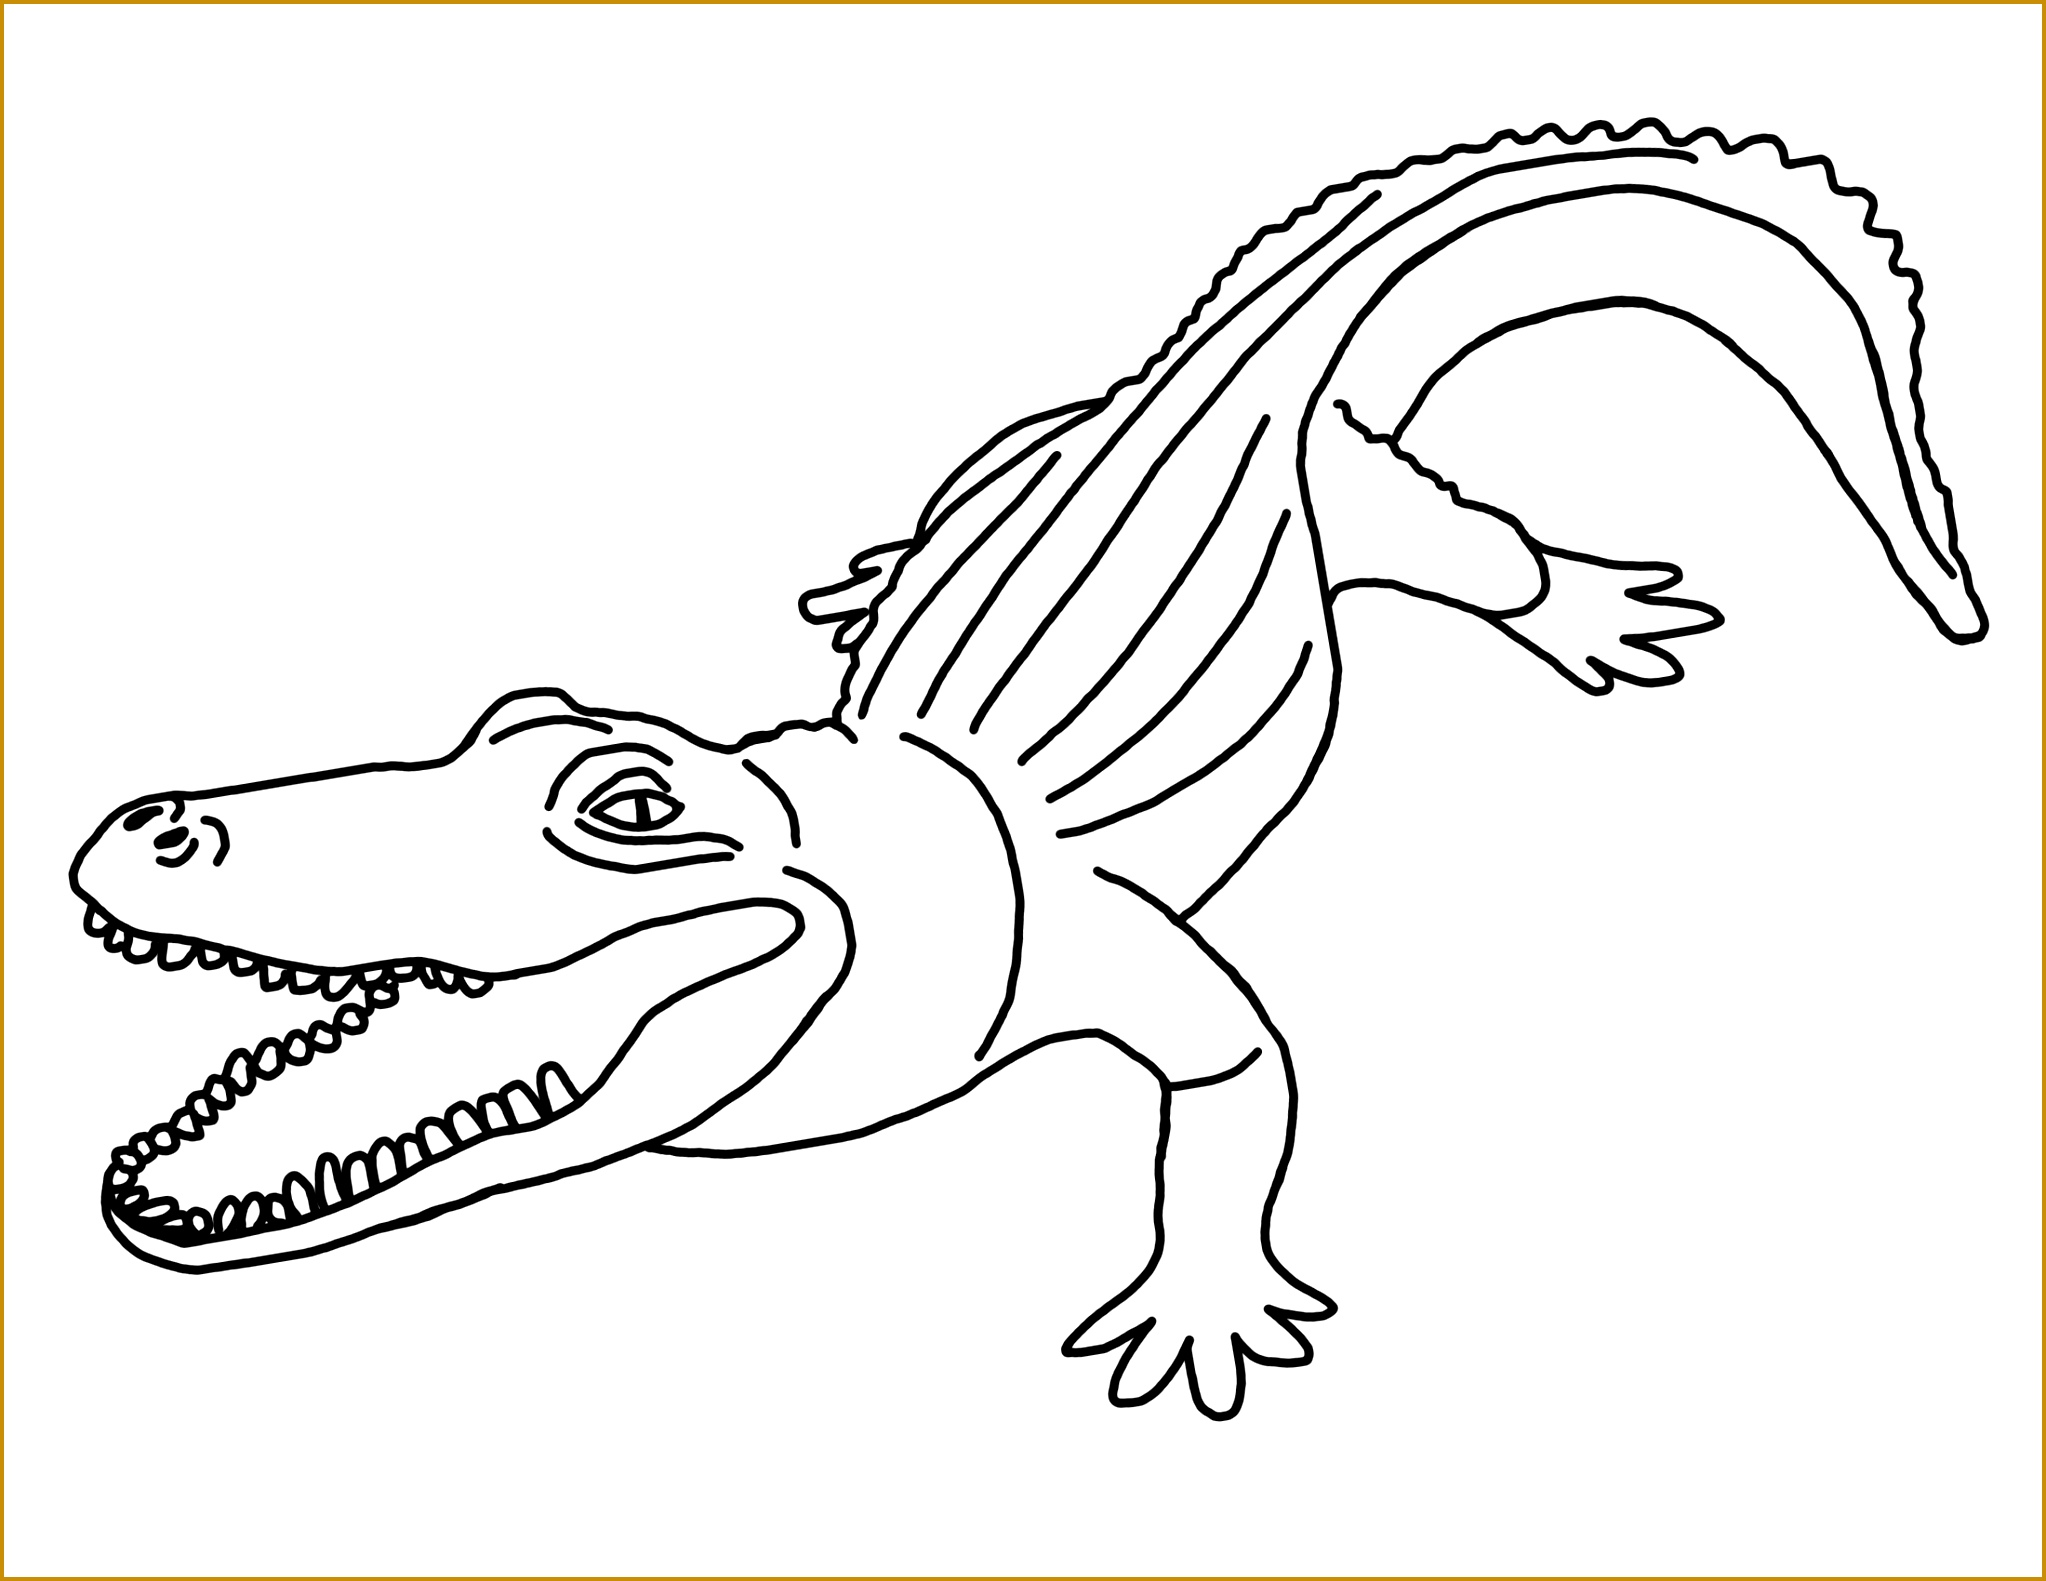 printable alligator coloring pages for kids Alligator Coloring Pages Printable 15812046